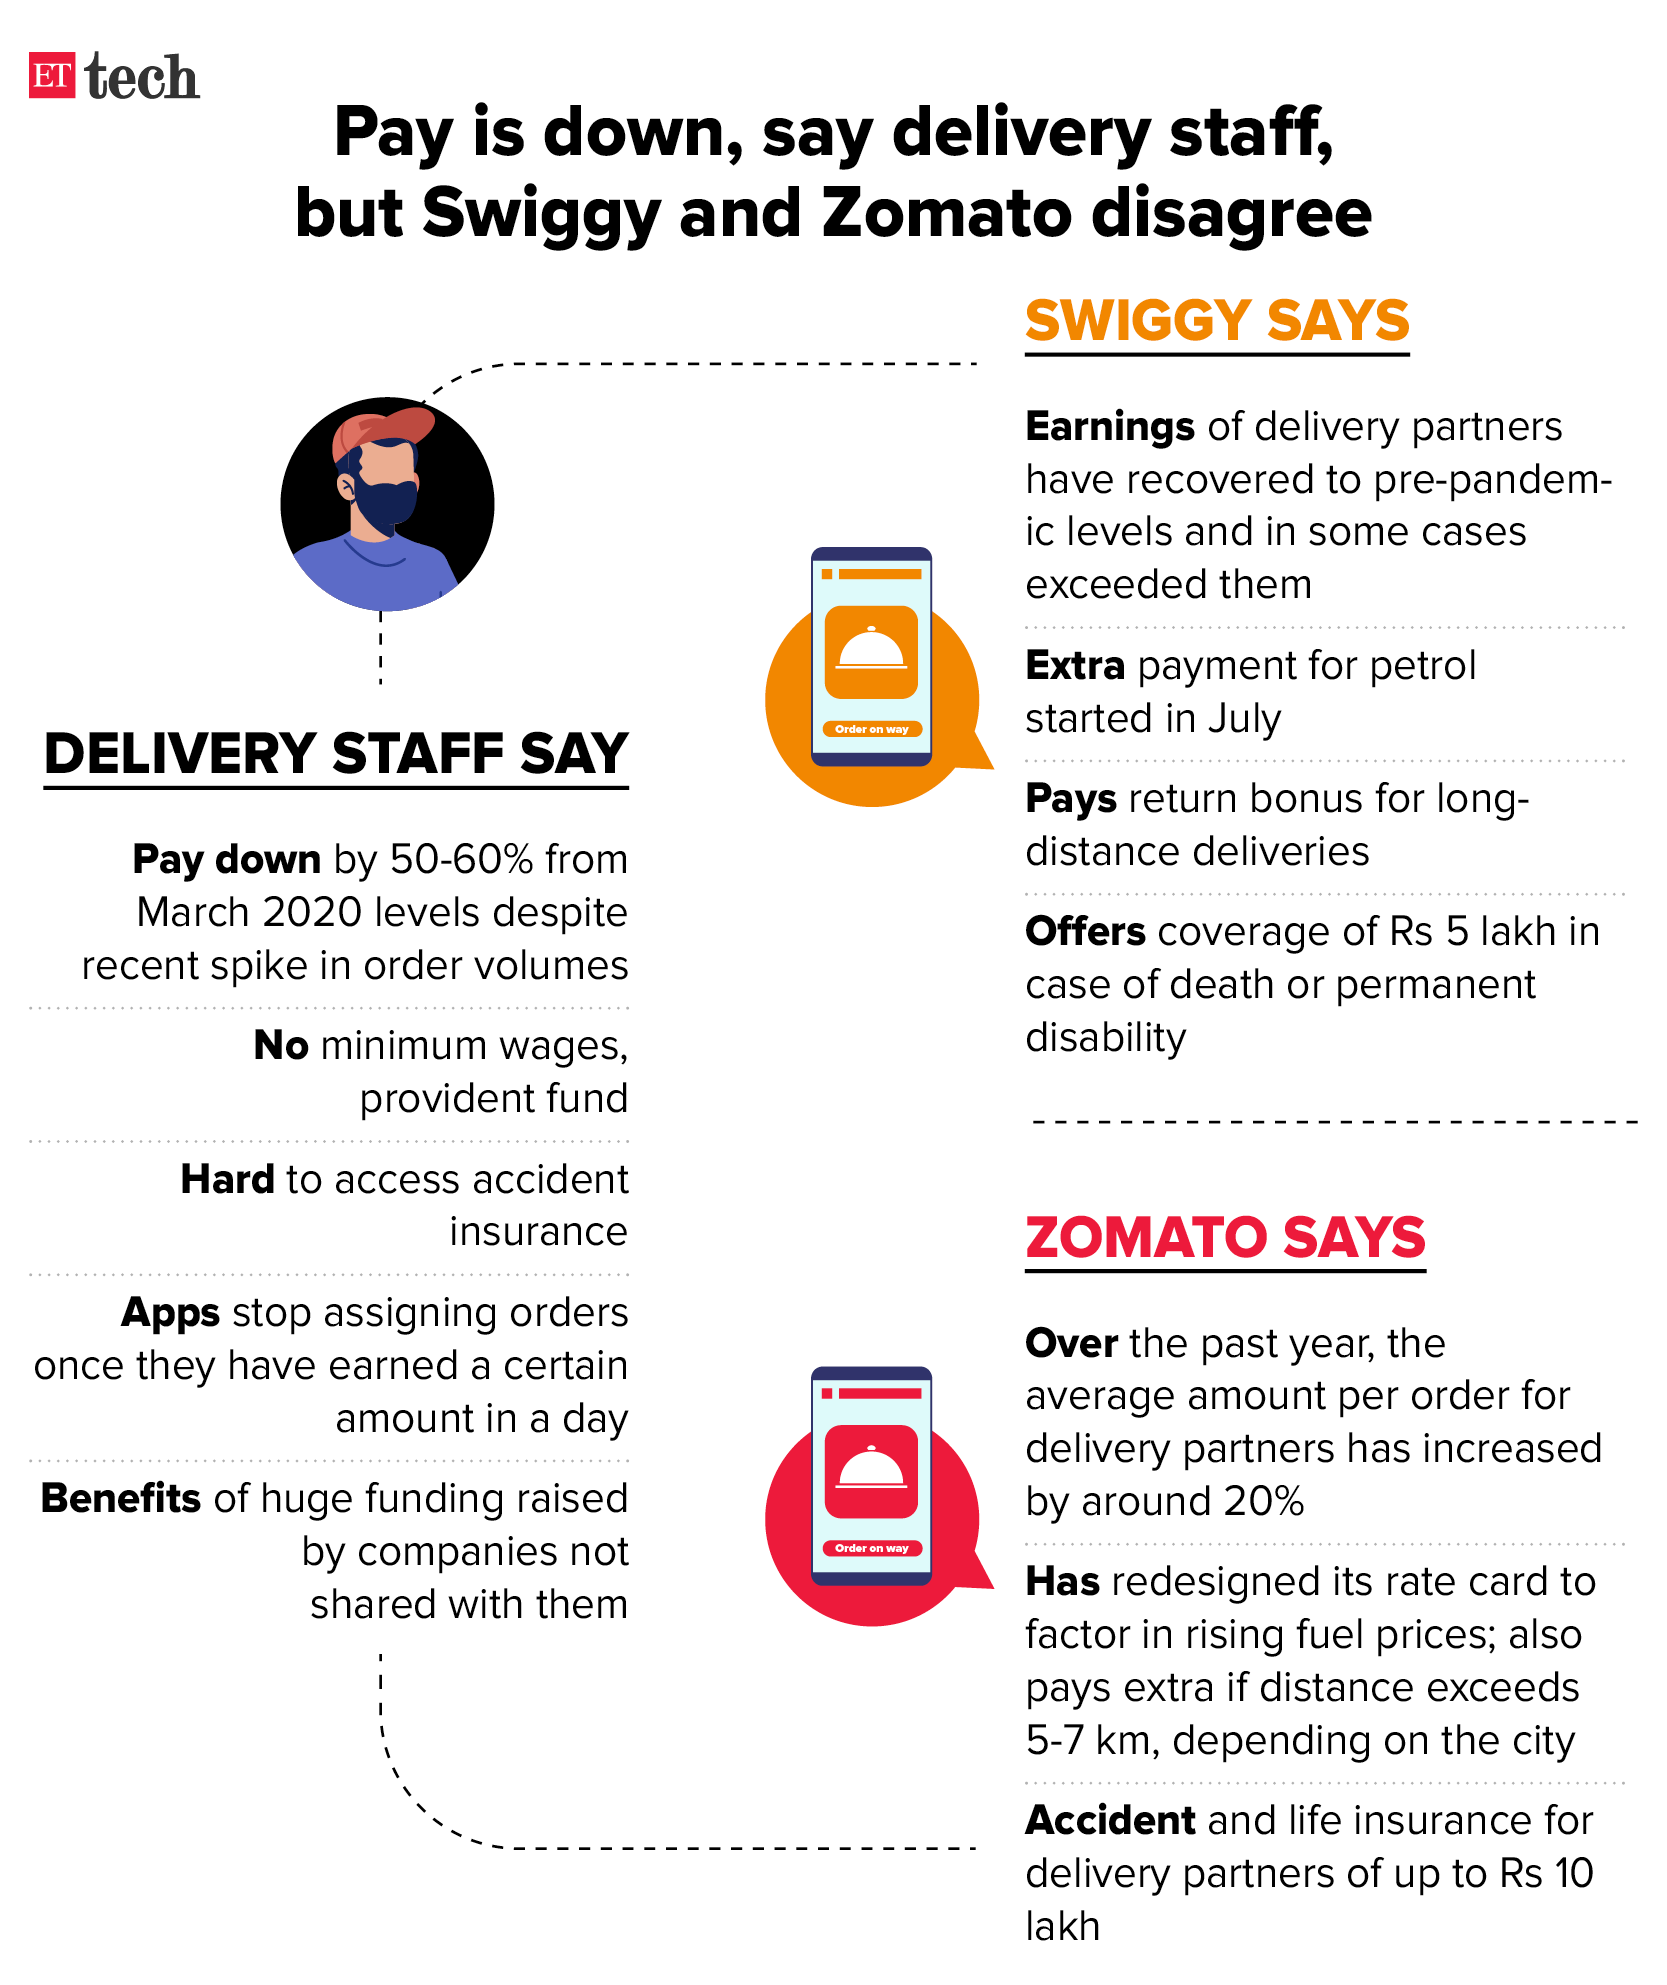 How Swiggy and Zomato pay delivery staff